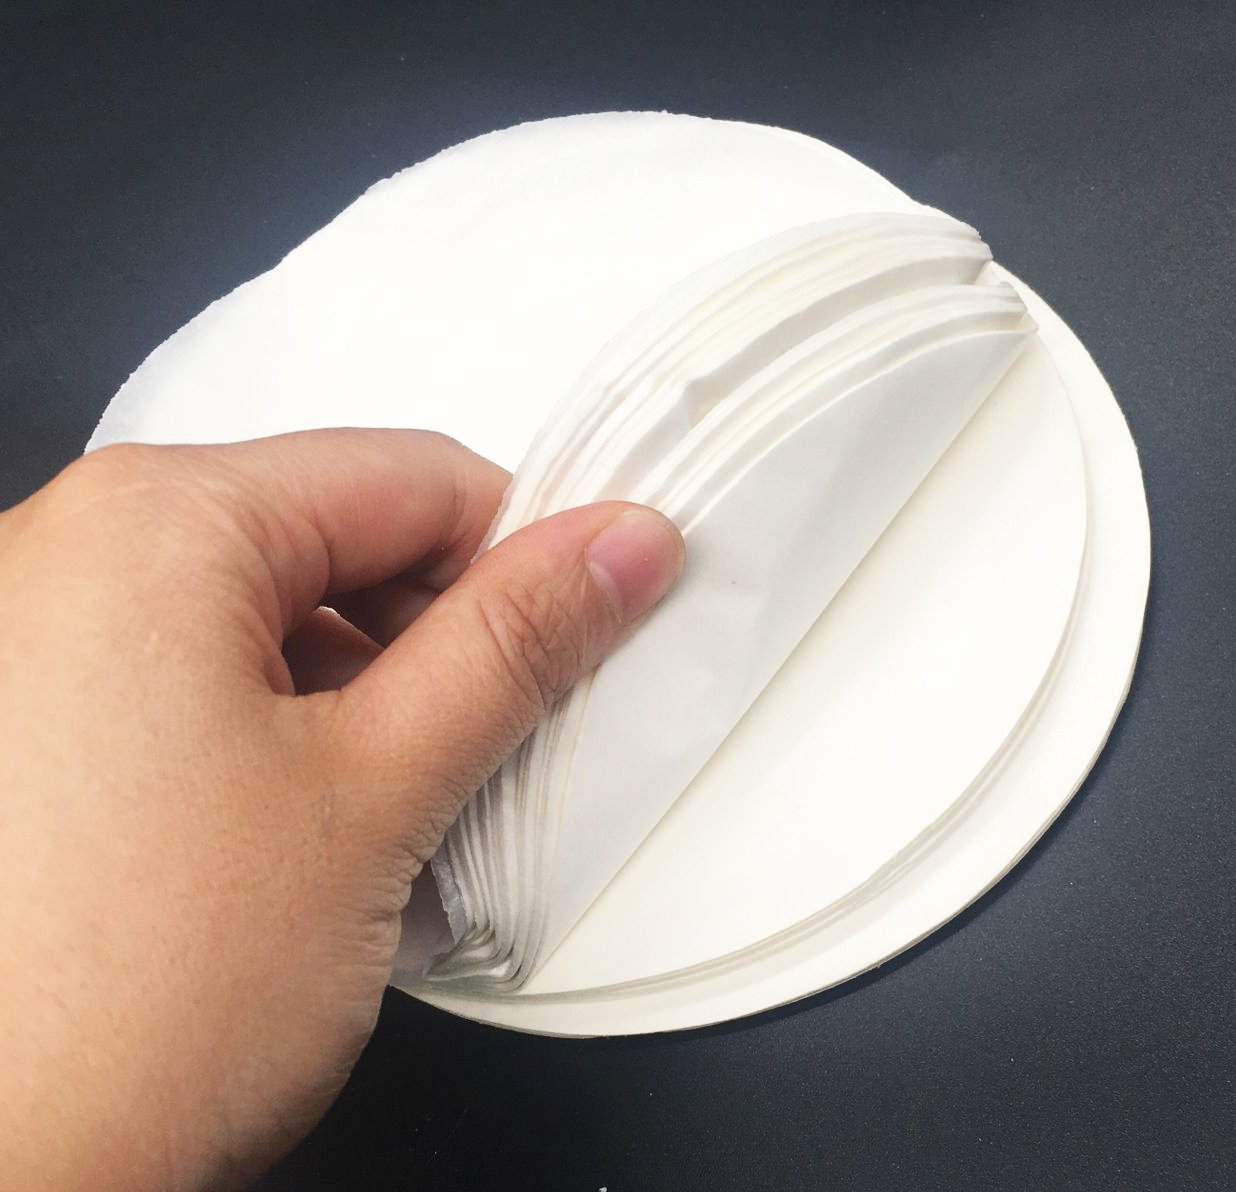 6 Inch Parchment Paper Liners Sheets 350pcs Set For Round Cake Pans Diameter Co Ng And Baking Wrapping Paper Somtis Best Christmas Gifts 2018